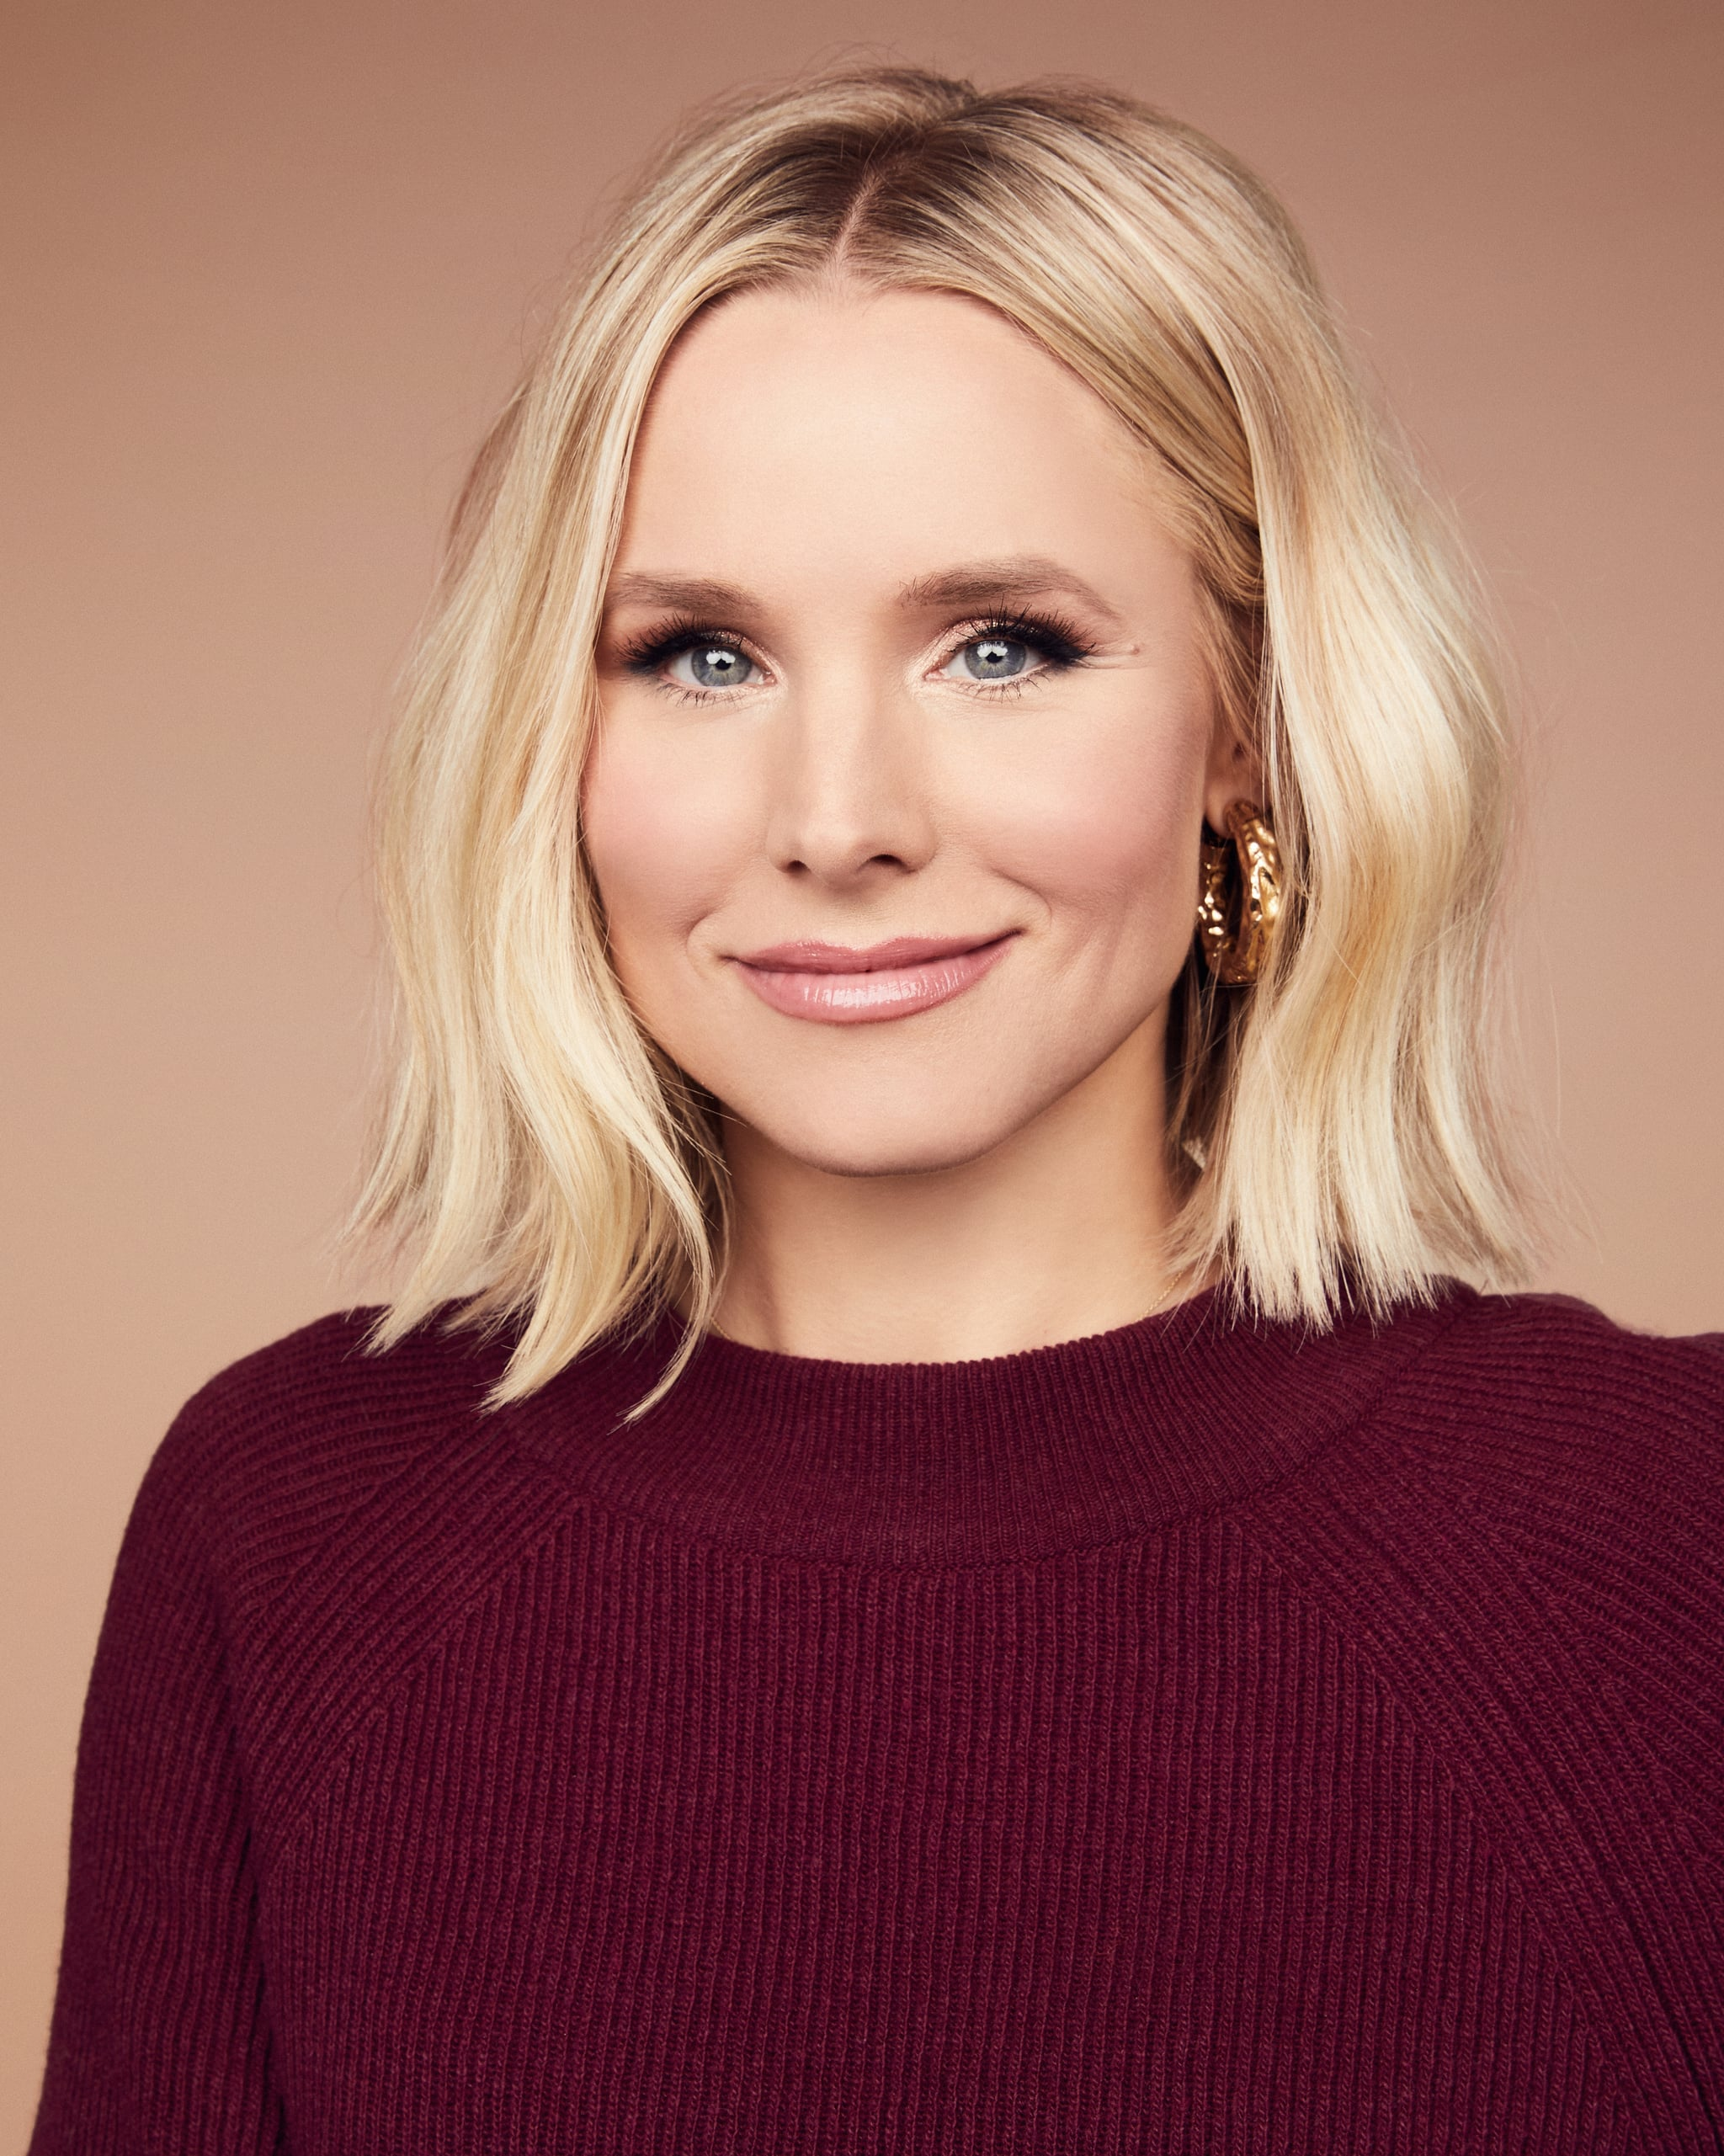 FROZEN 2 - (Picuted) Kristen Bell. Photo by Ricky Middlesworth. © 2019 Disney. All Rights Reserved.